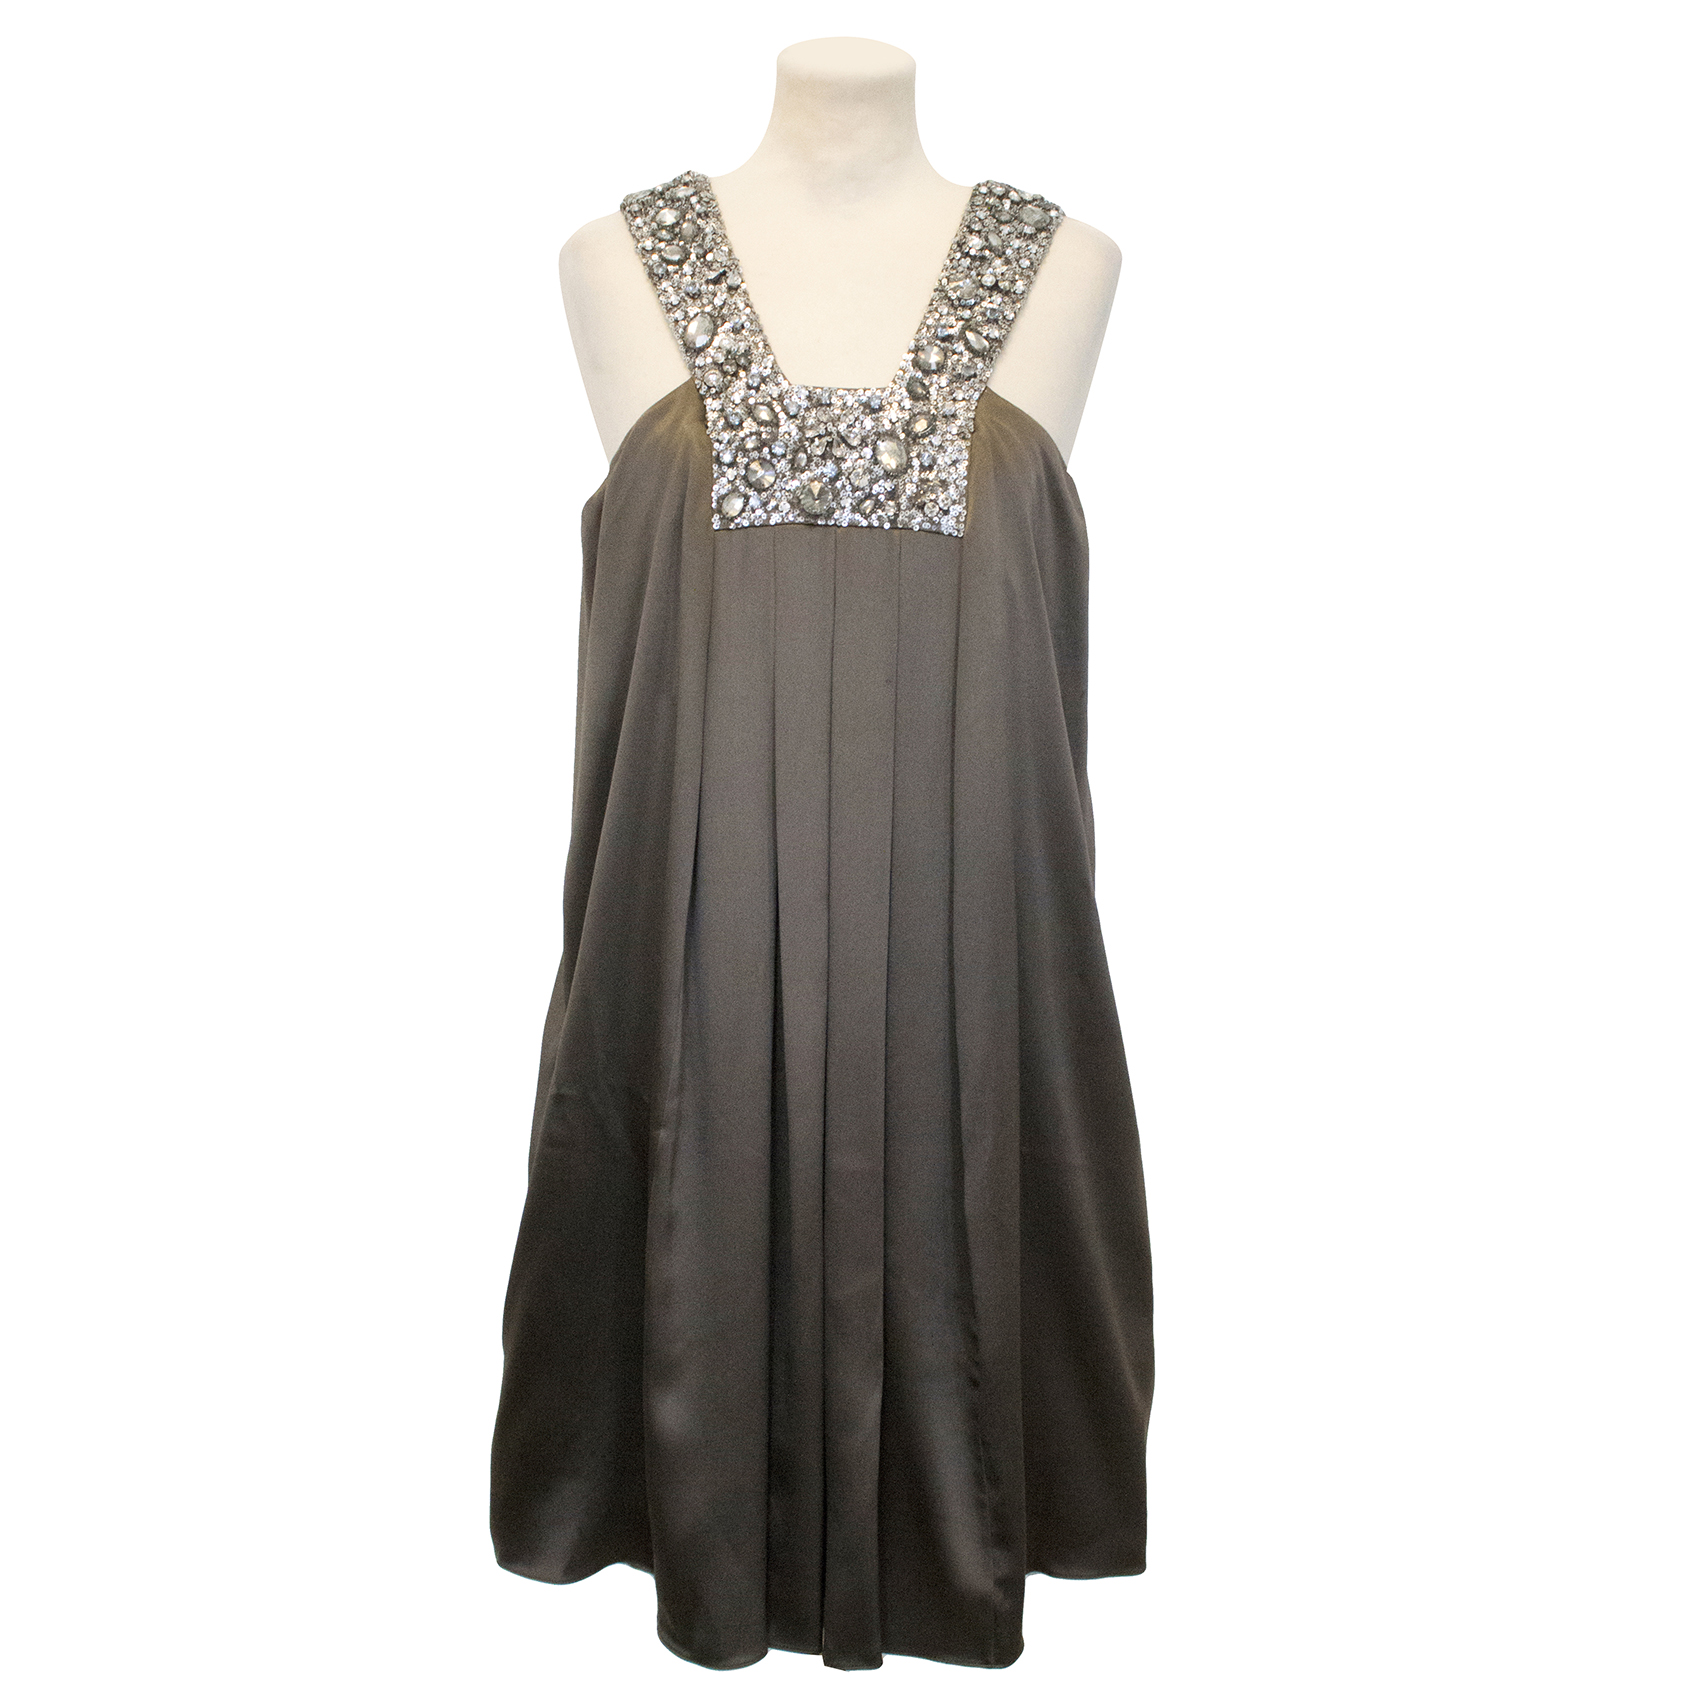 Collette Dinnigan Brown Silk Dress with Jewelled Neckline